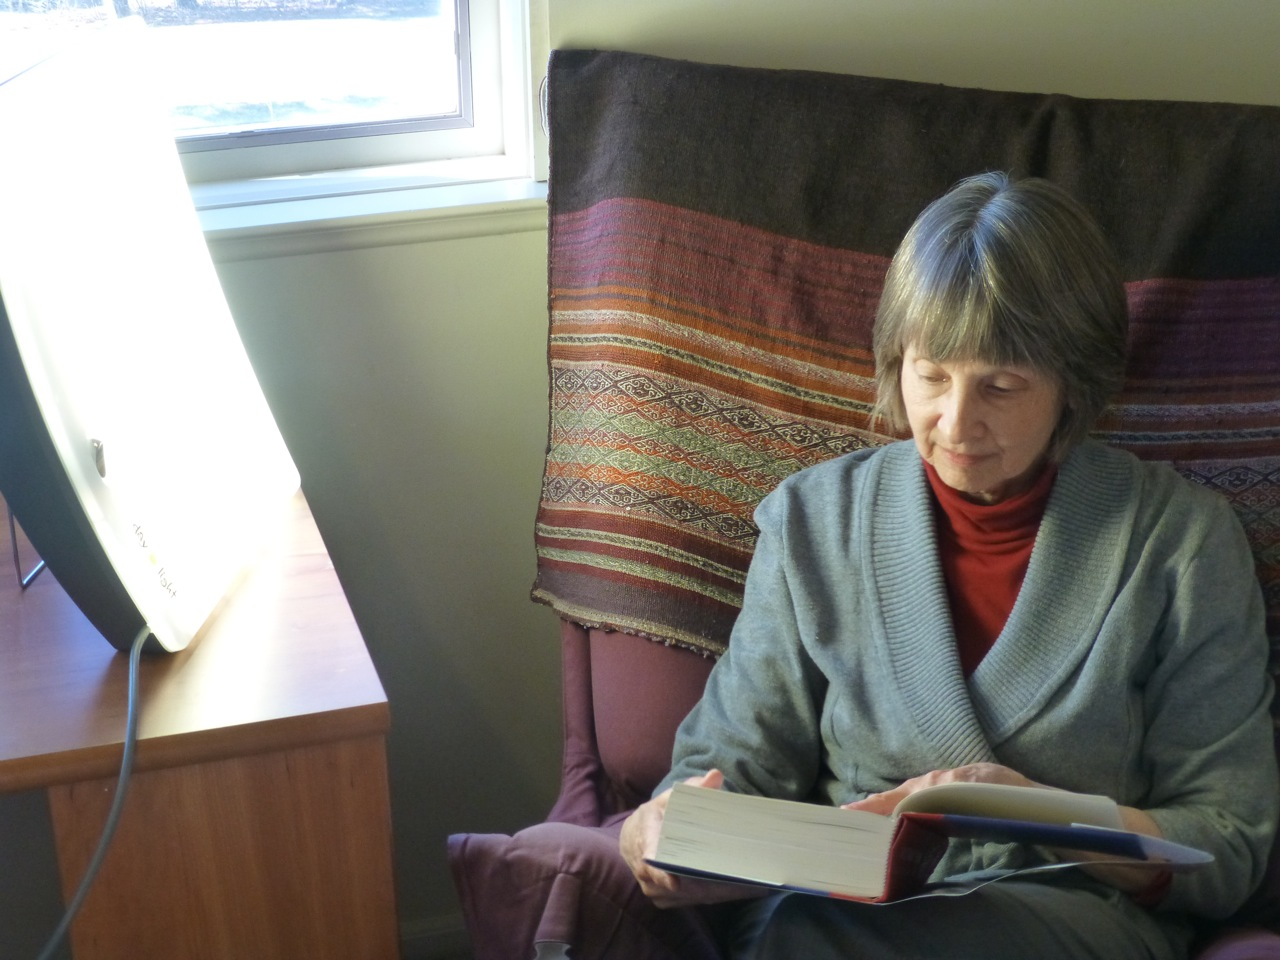 Lois Maharg sits next to a light box, reading a book